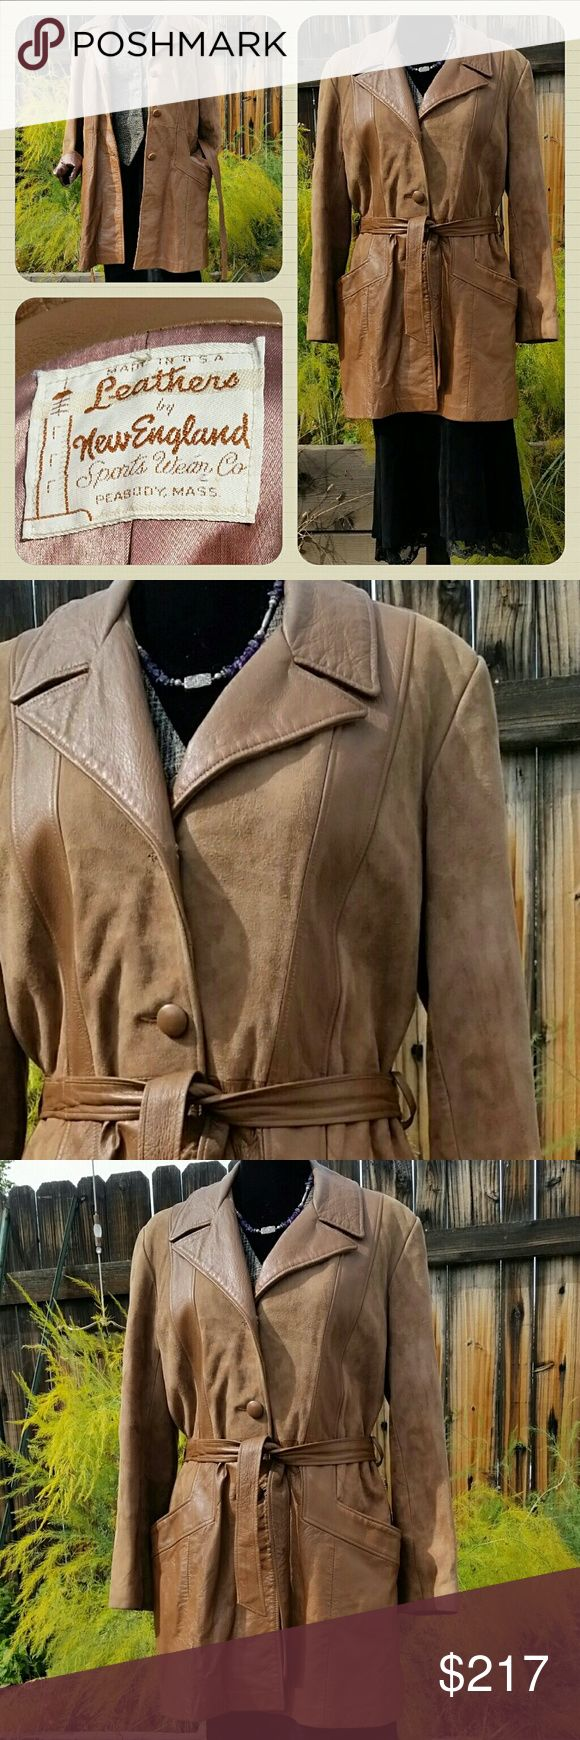 Vintage 60s Belted Suede Hippie Jacket Vintage 60s Suede Jacket Brown Leather Belted Coat Softest Suede Car Coat Haute Hippie Chic Boho Festival Desert Jacket 60s Mod Hippie Style. Exquisitely soft Suede with shiny leather accents.  Belted jacket from London / British High Fashion.   Beatles, Twiggy, and... in the U.S.?  Janis Joplin, Woodstock,  Summer of Love, San Francisco Flower Children ... The era of Love... Nostalgic style. Made by New England Sportswear Company in Mass, USA. No size…